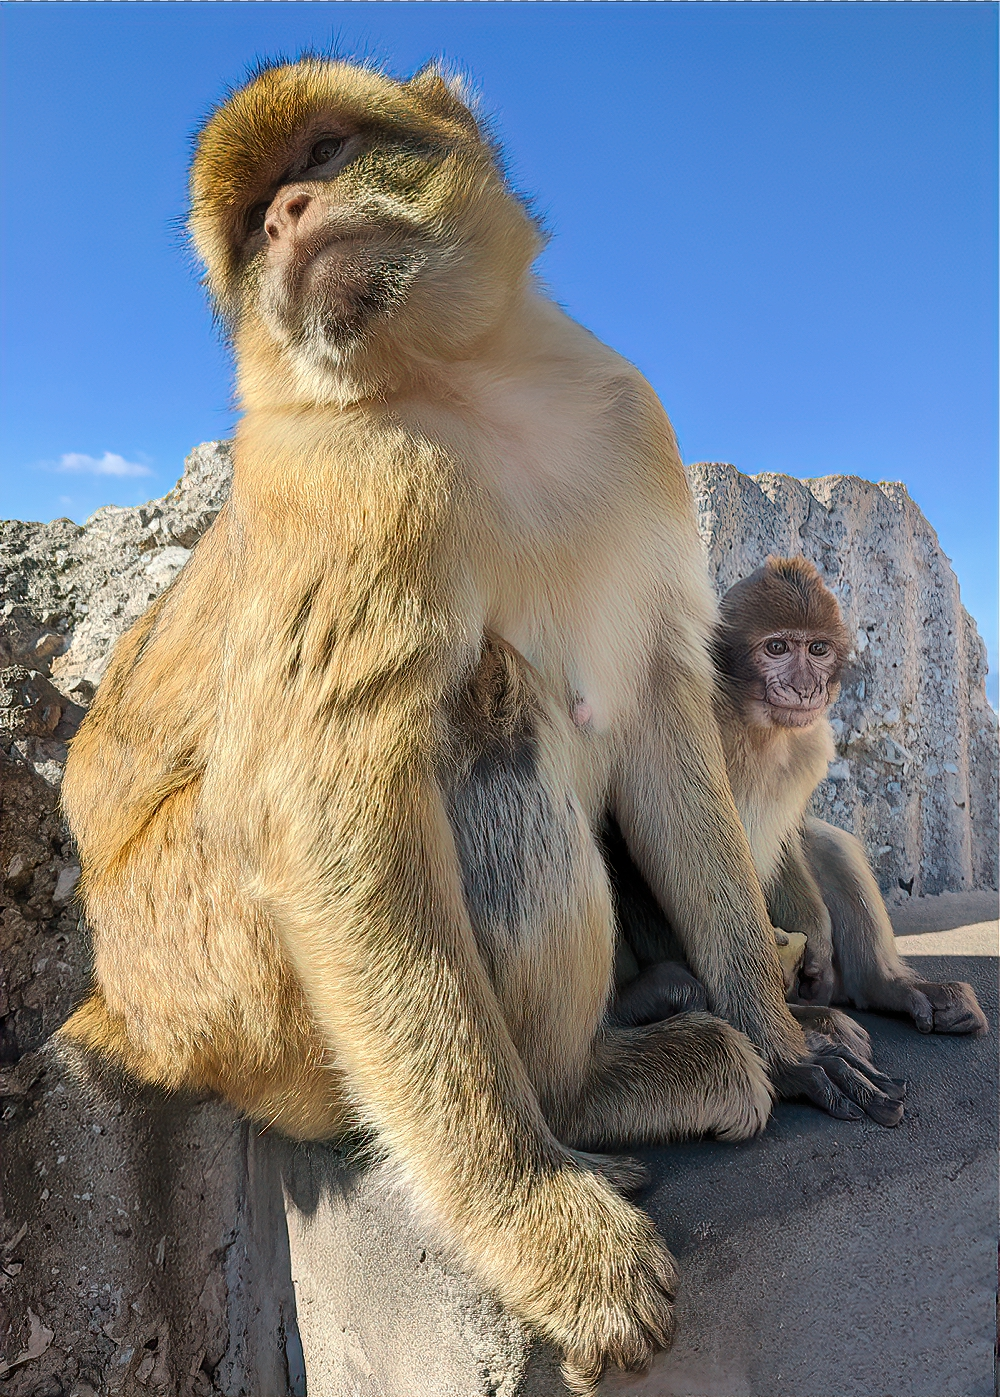 Barbary macaques at the Rock of Gibraltar.